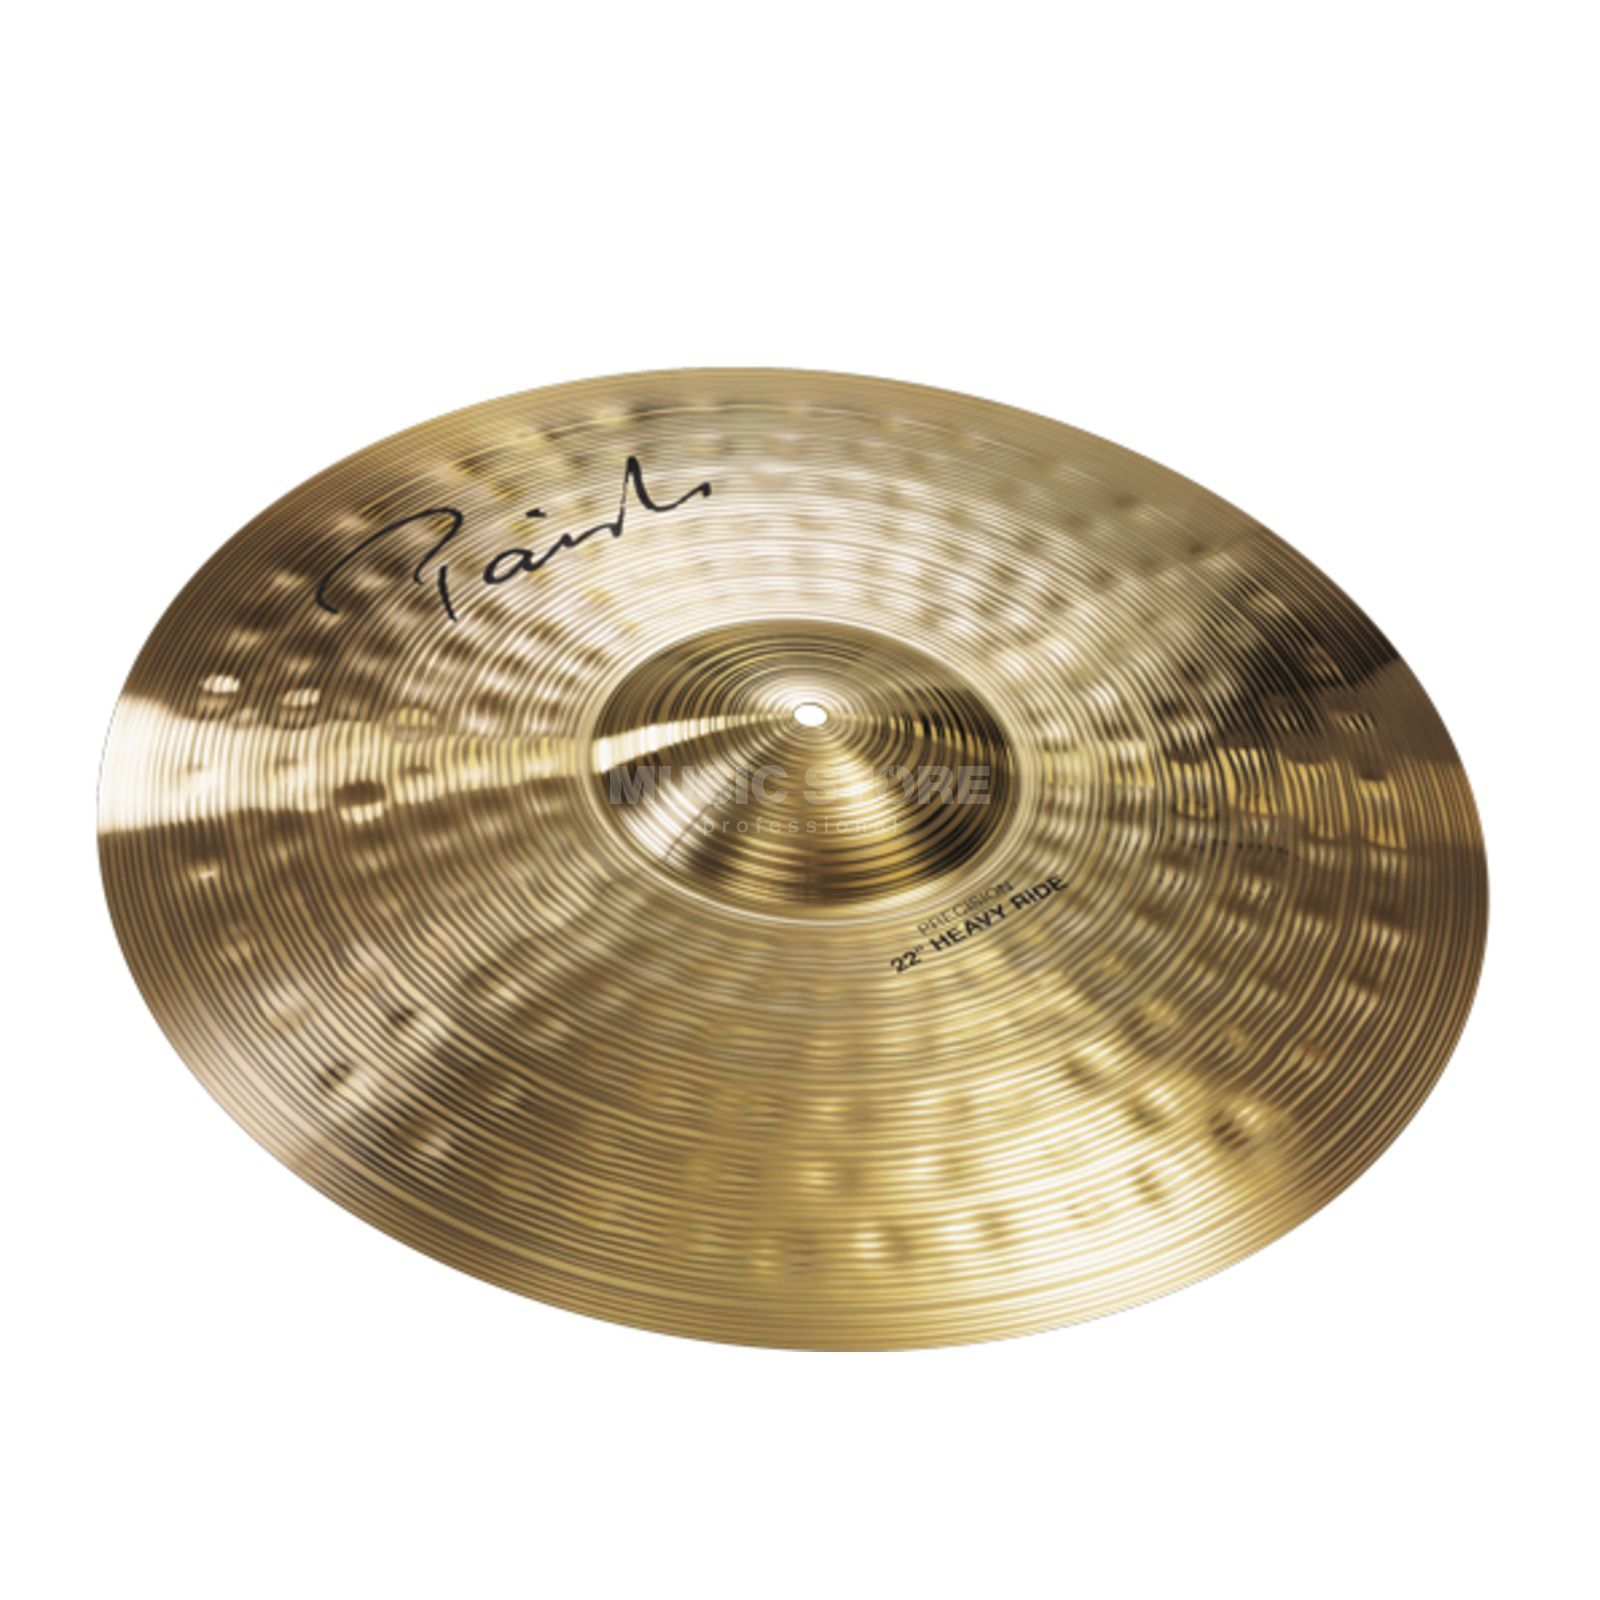 "Paiste Signature Precision Ride 22"", Heavy Produktbild"